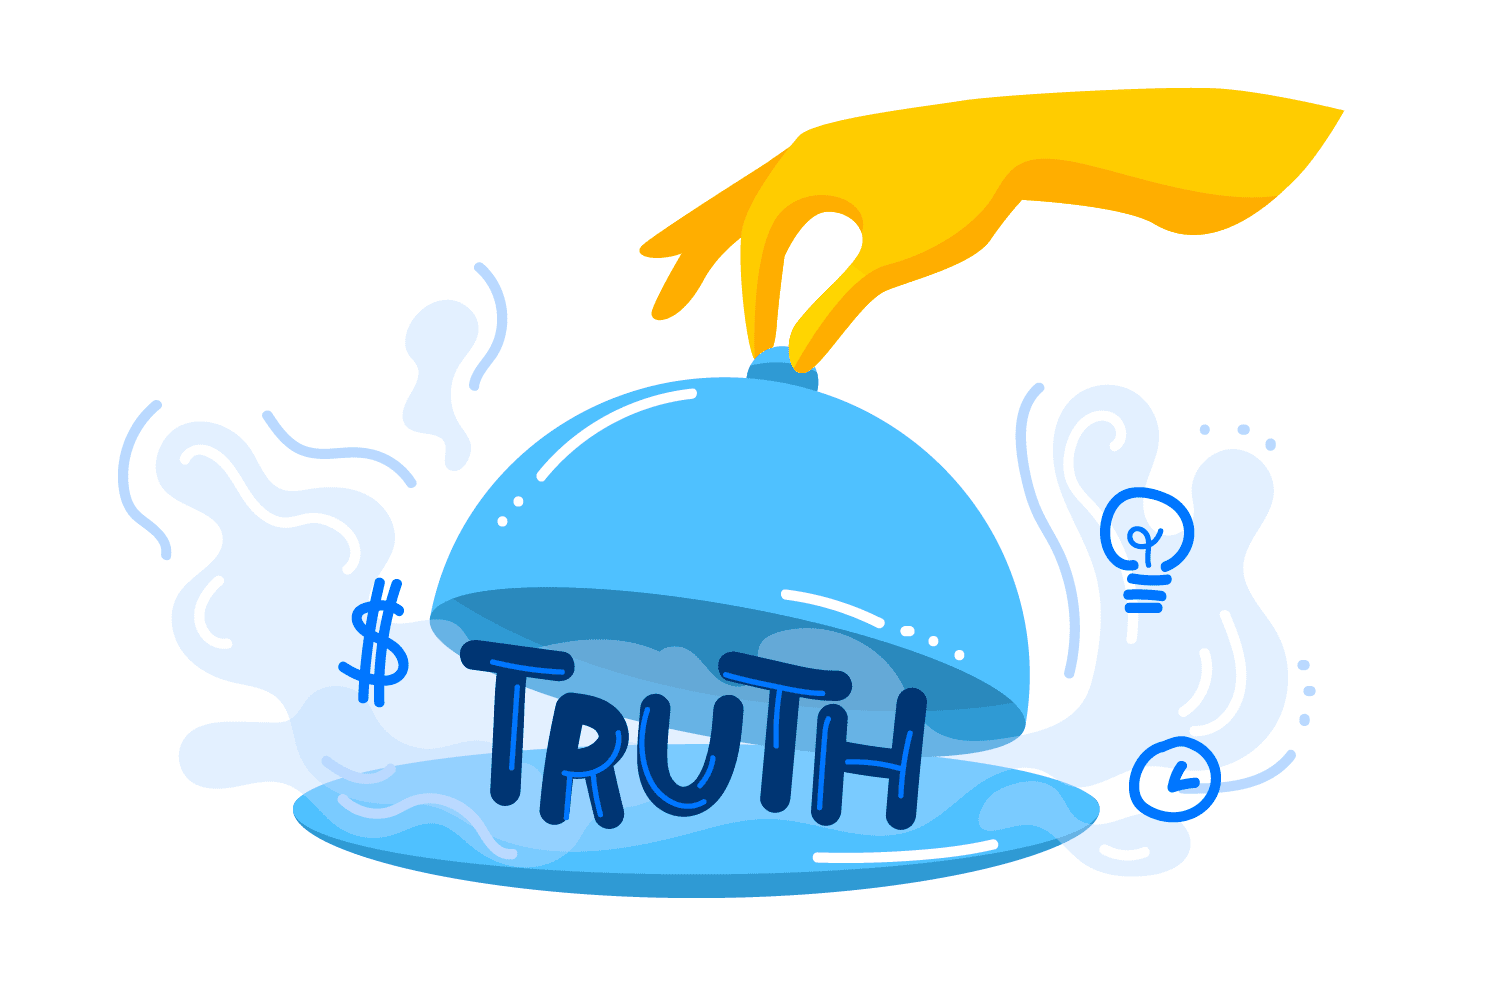 Illustration showing the word truth served as a meal on a plate with symbols of dollar, clock, and light bulb in smell coming from the dish